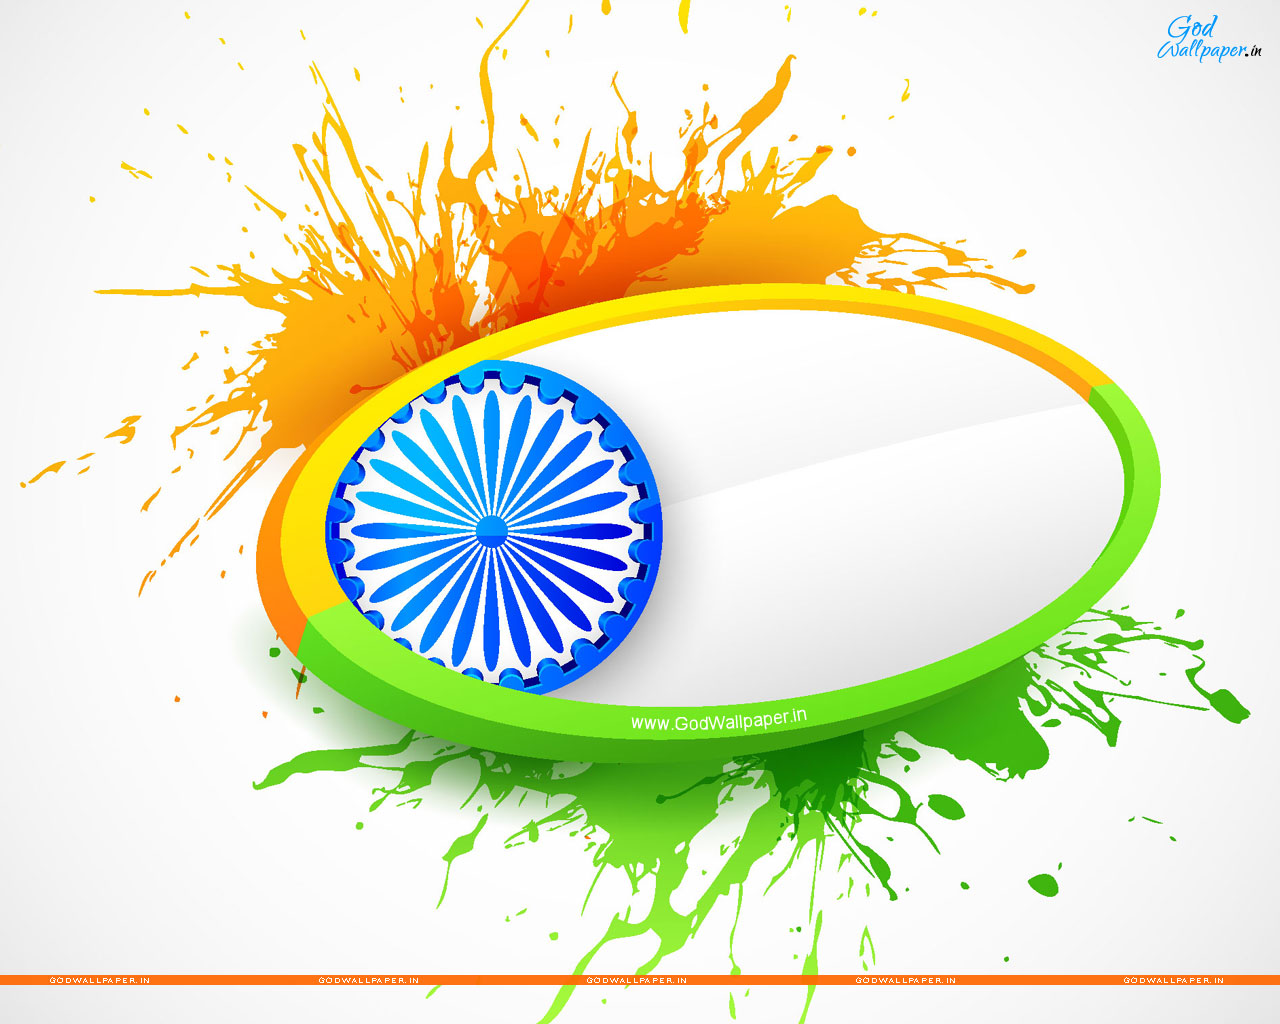 Republic Day 26th January Wallpapers Free Download